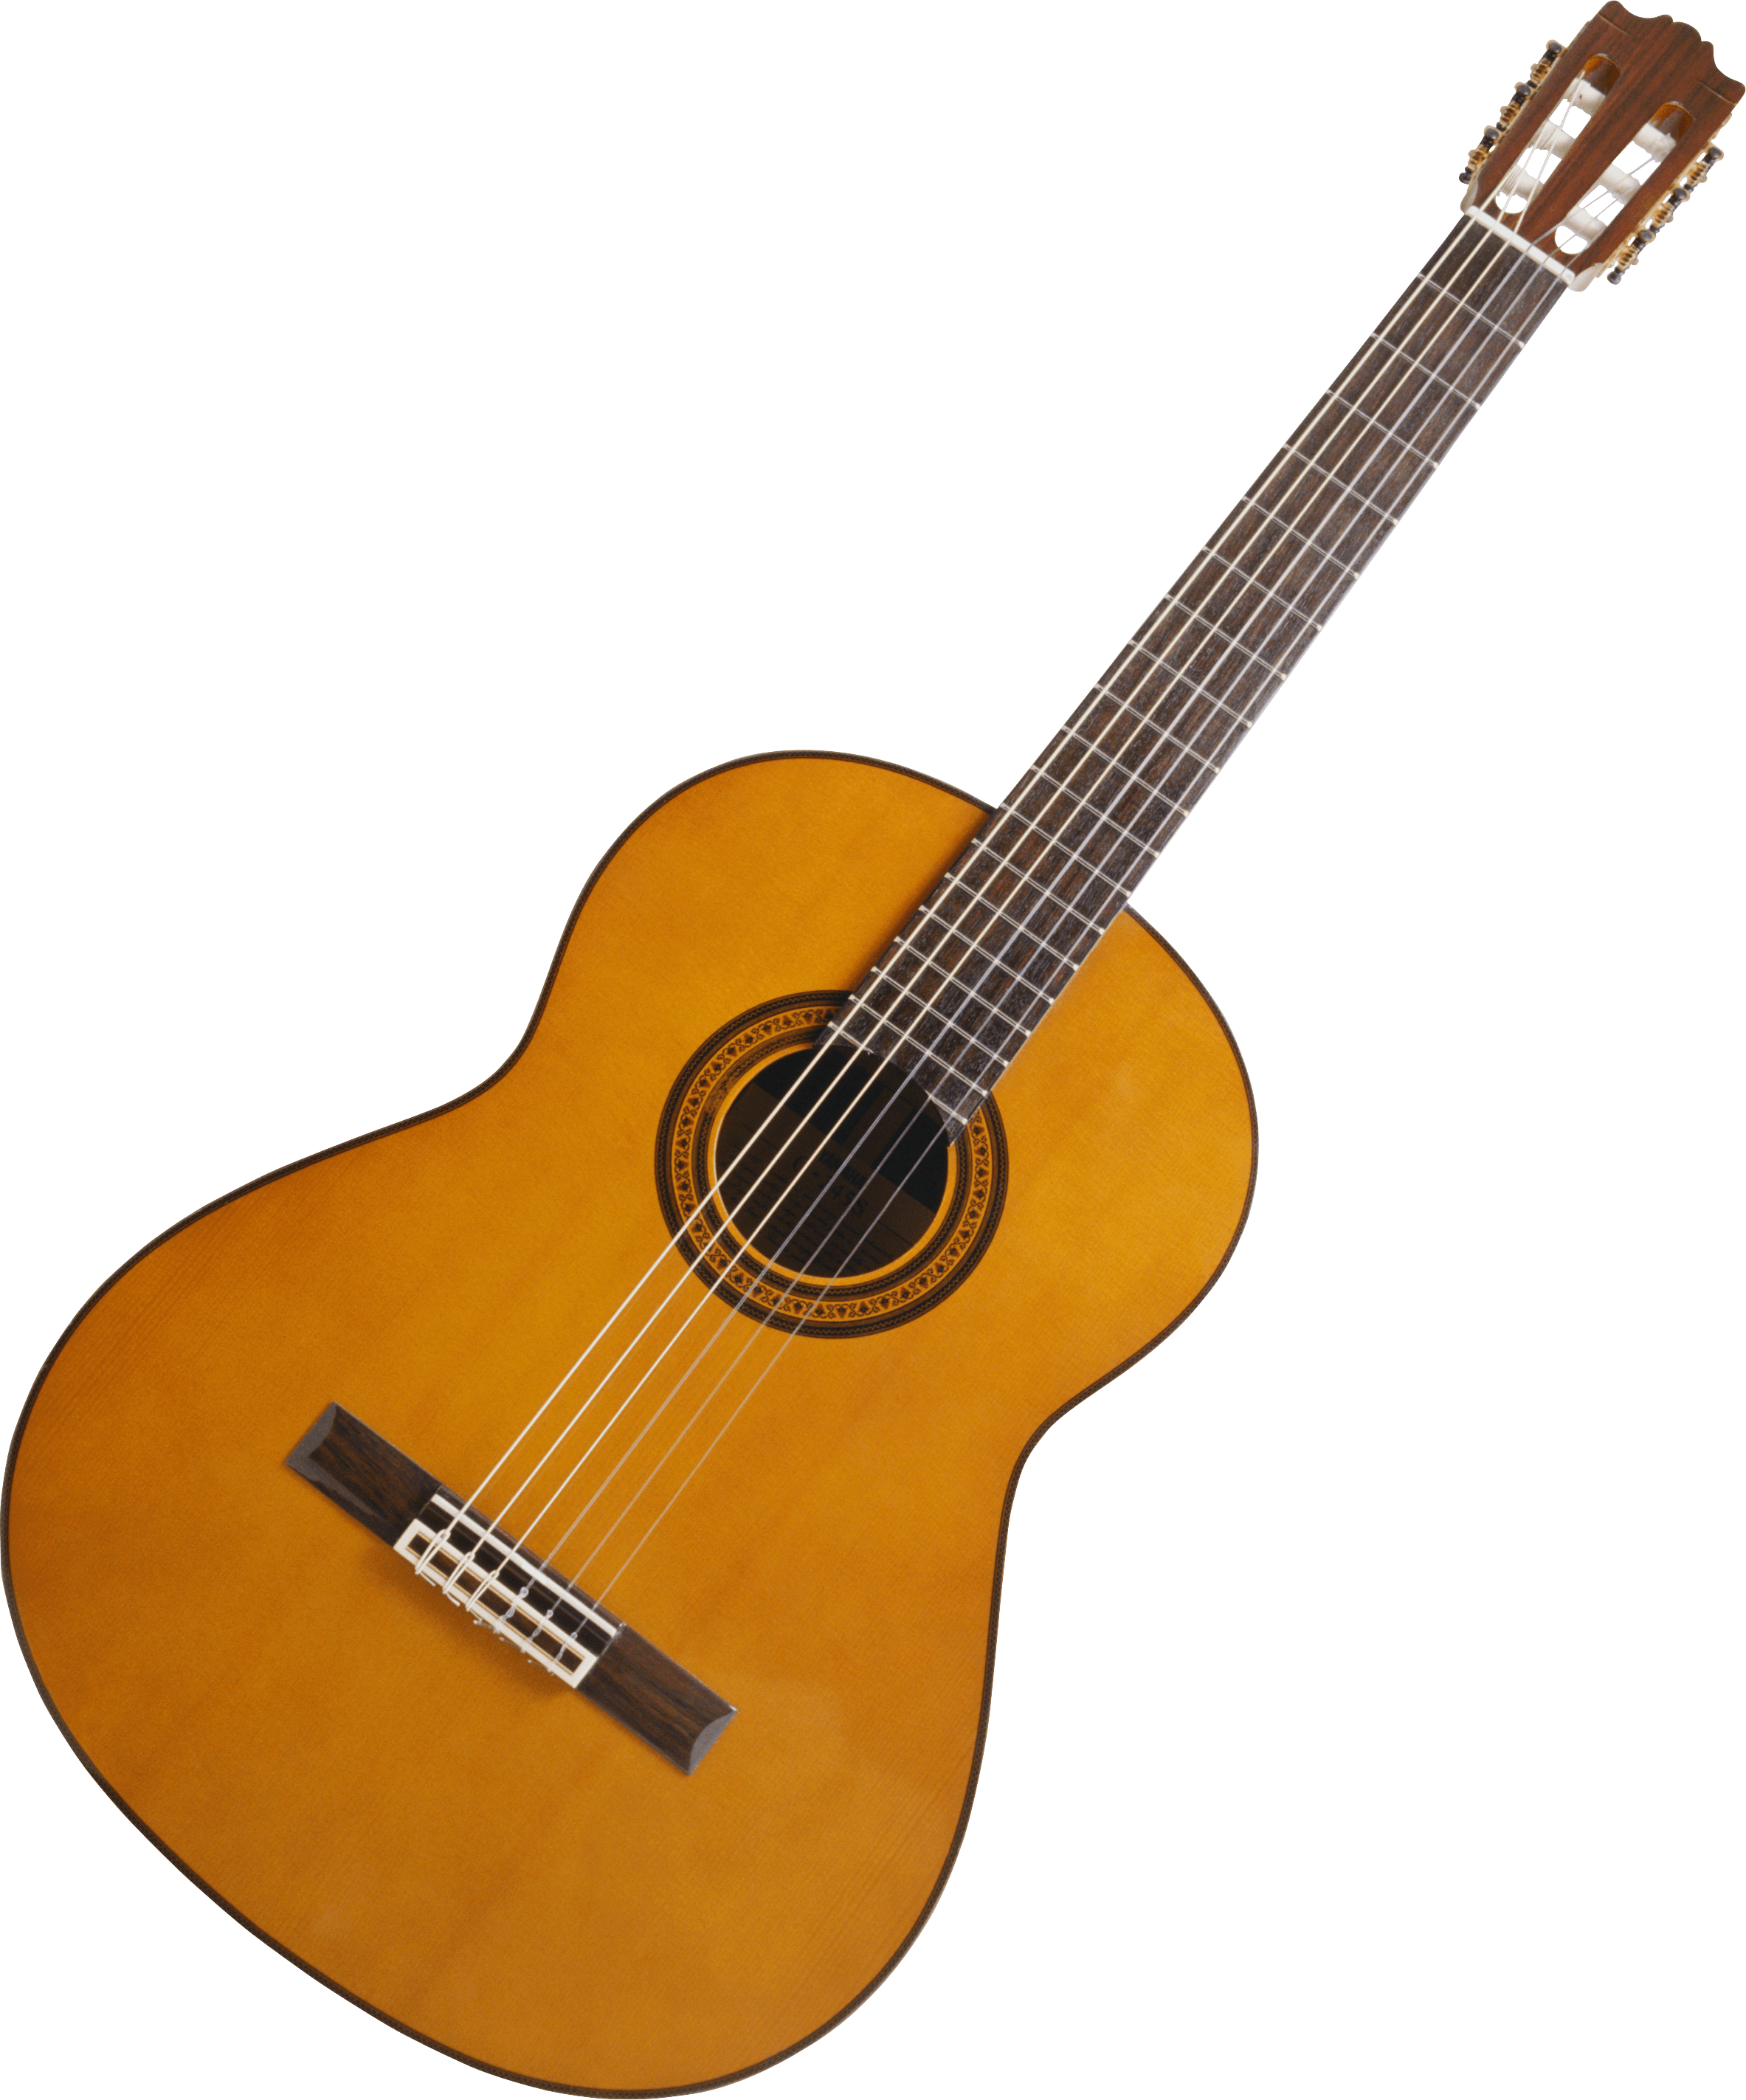 Clipart guitar guitar fender. Acoustic transparent png stickpng